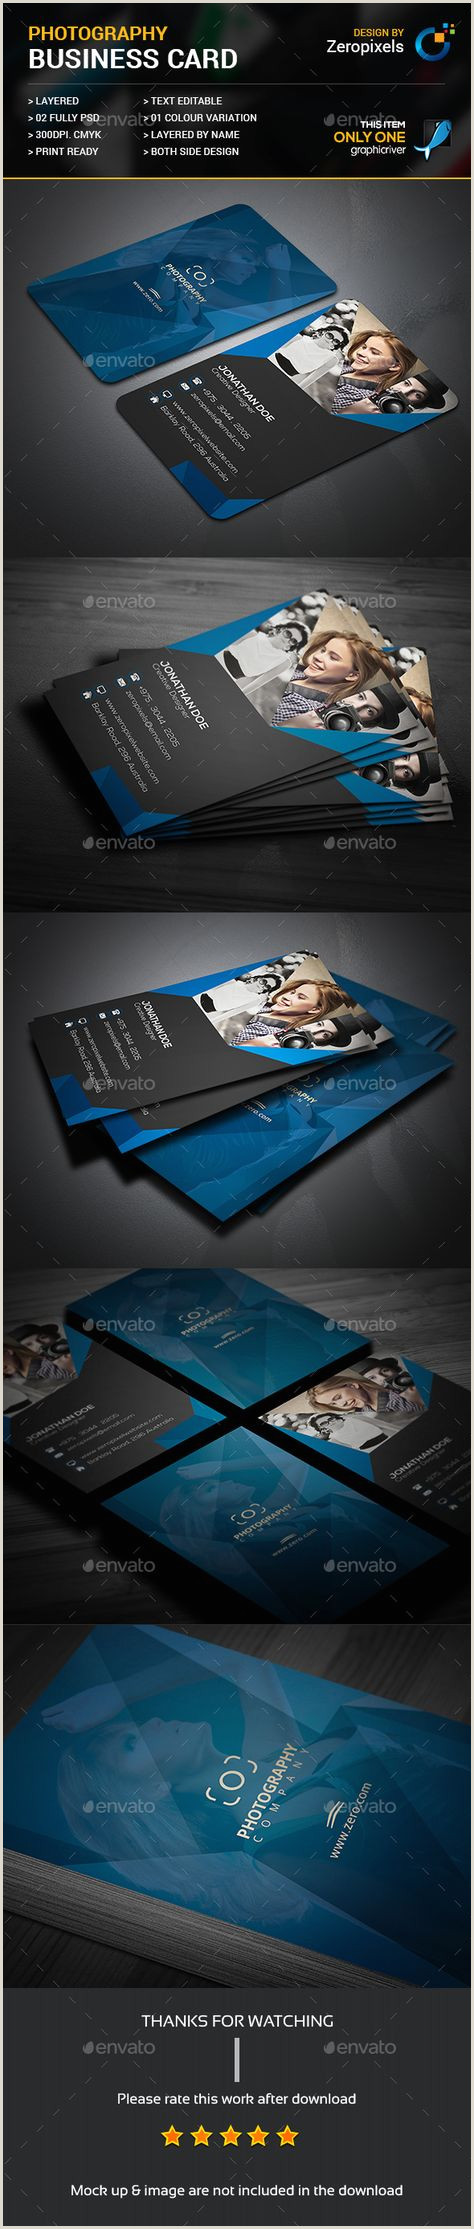 Creative Photography Business Cards Graphy Business Cards Template Free 70 Trendy Ideas